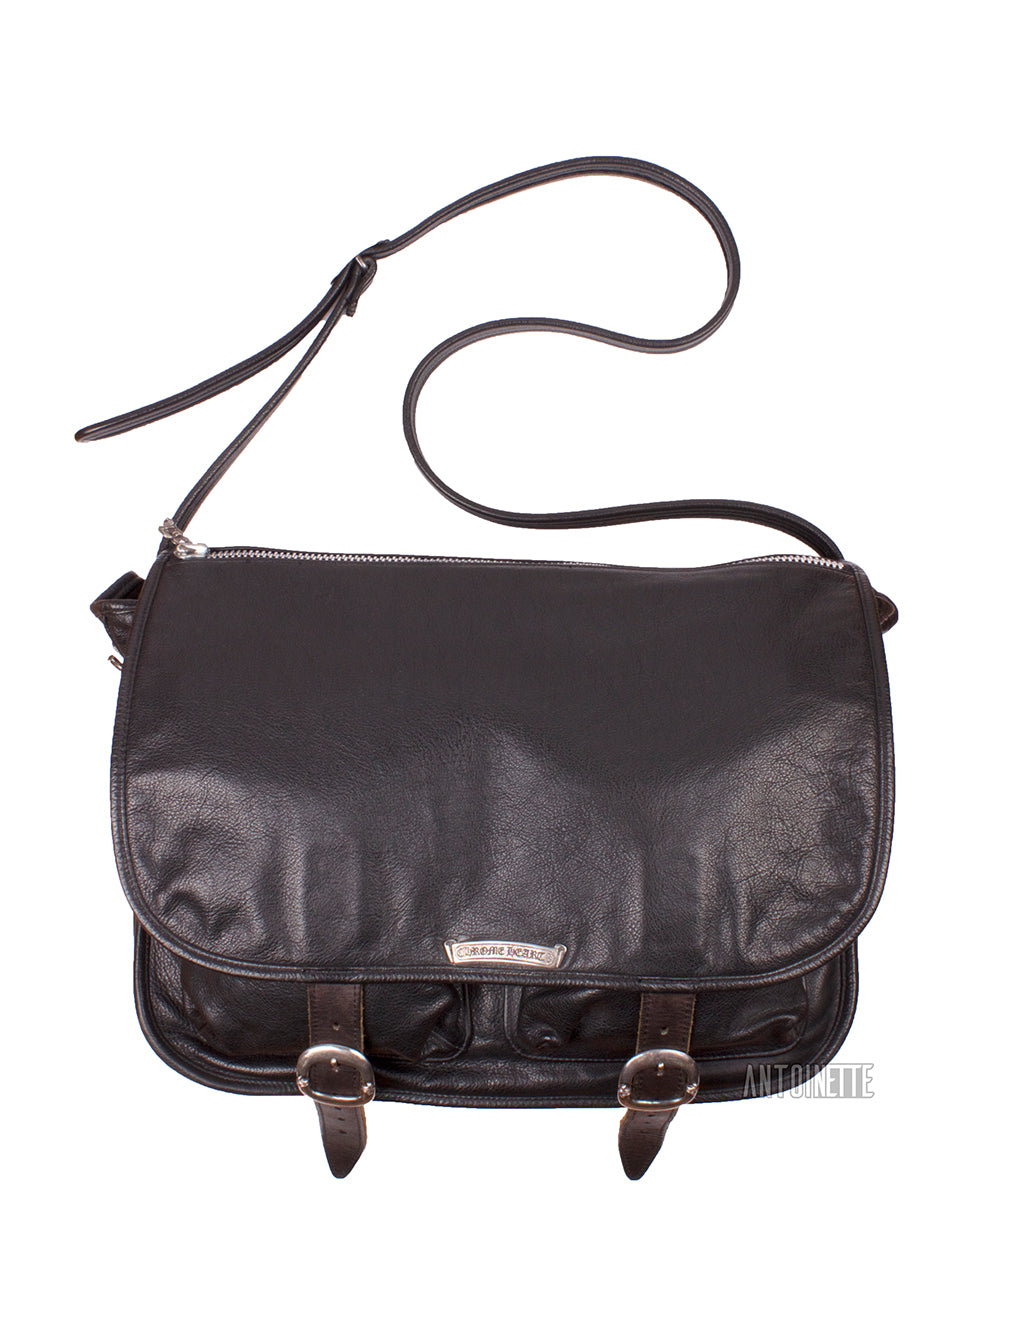 a2b8326812 Chrome Hearts Black Leather Shoulder Bag – Antoinette Boutique